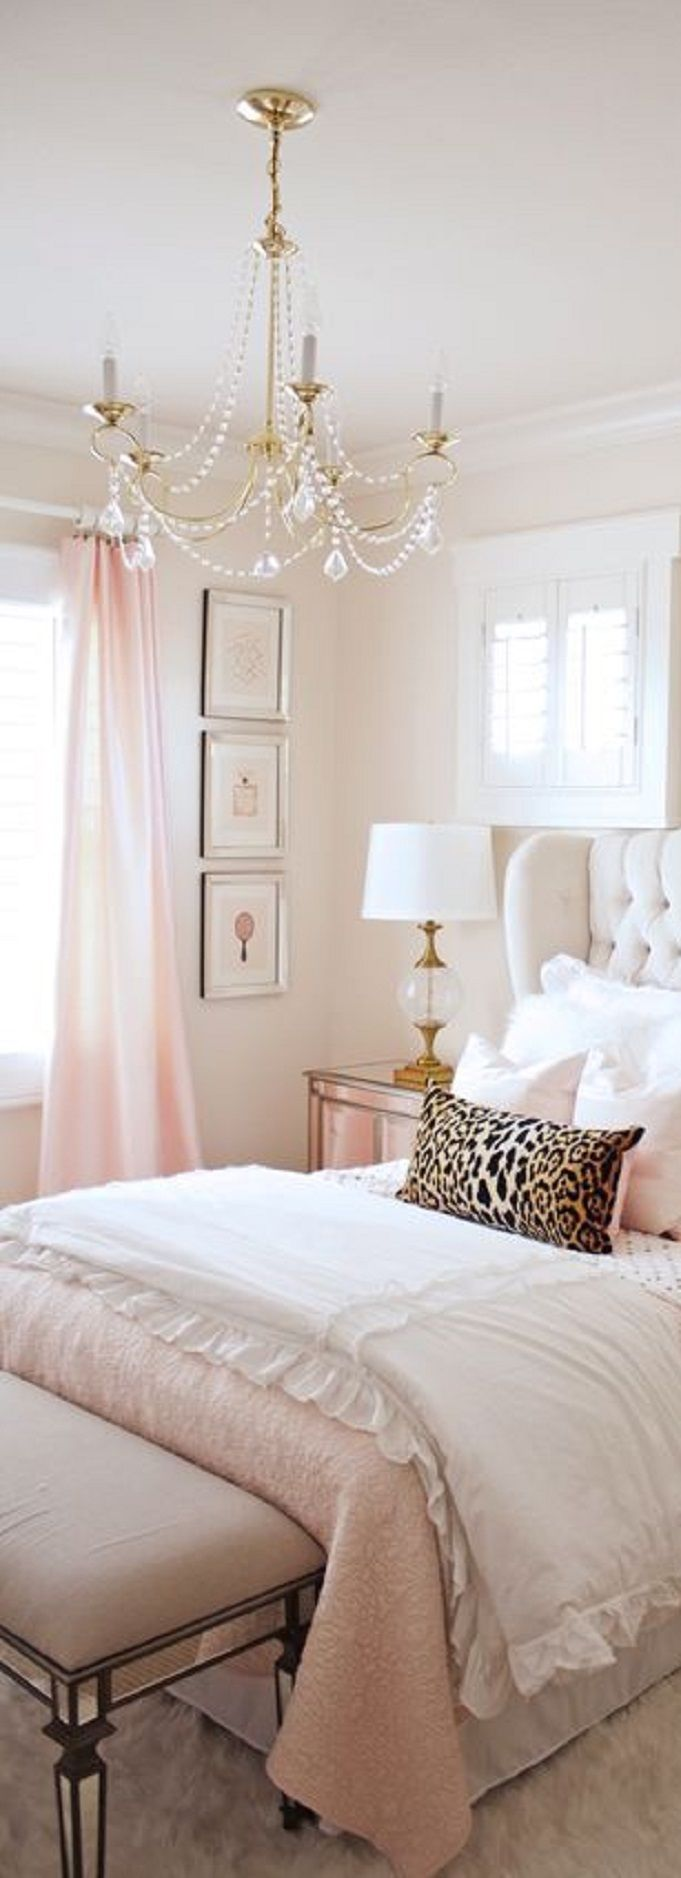 Pastel bedroom with a pop of leopard